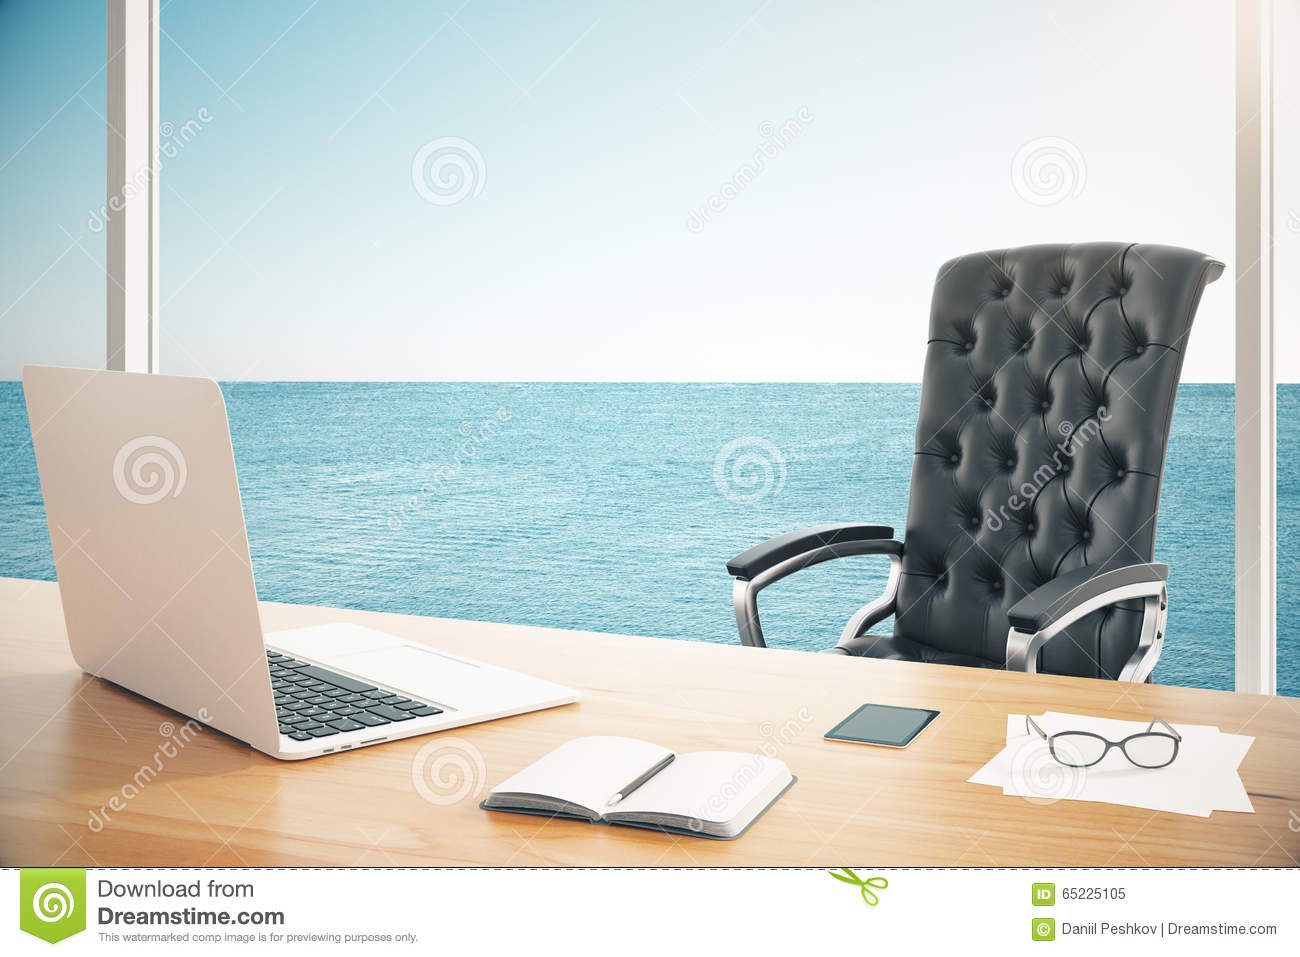 Modern leather chair with wooden table with laptop in room with